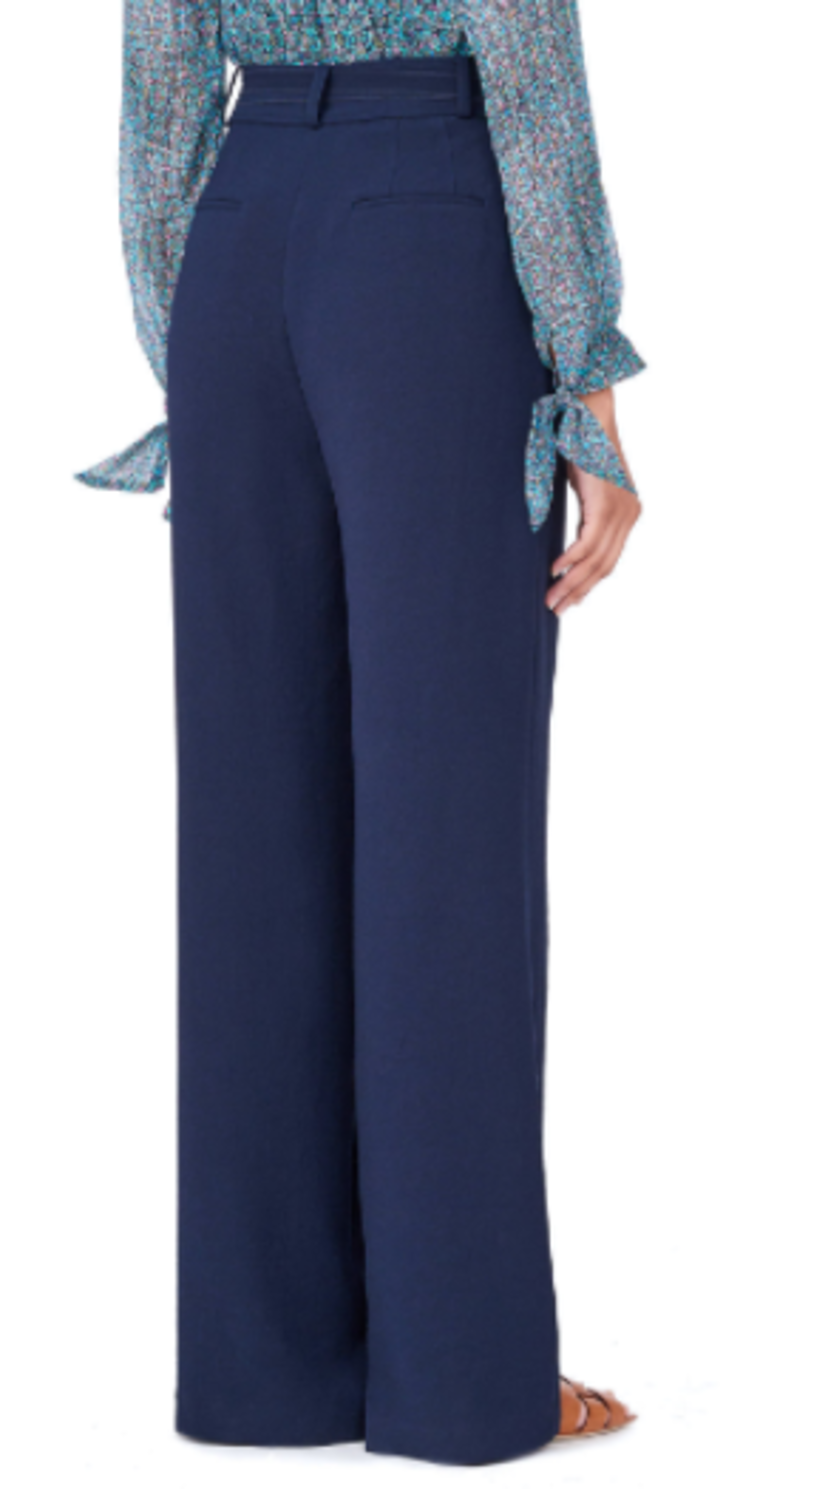 Rebecca Taylor Crepe Pant with Tie Pants